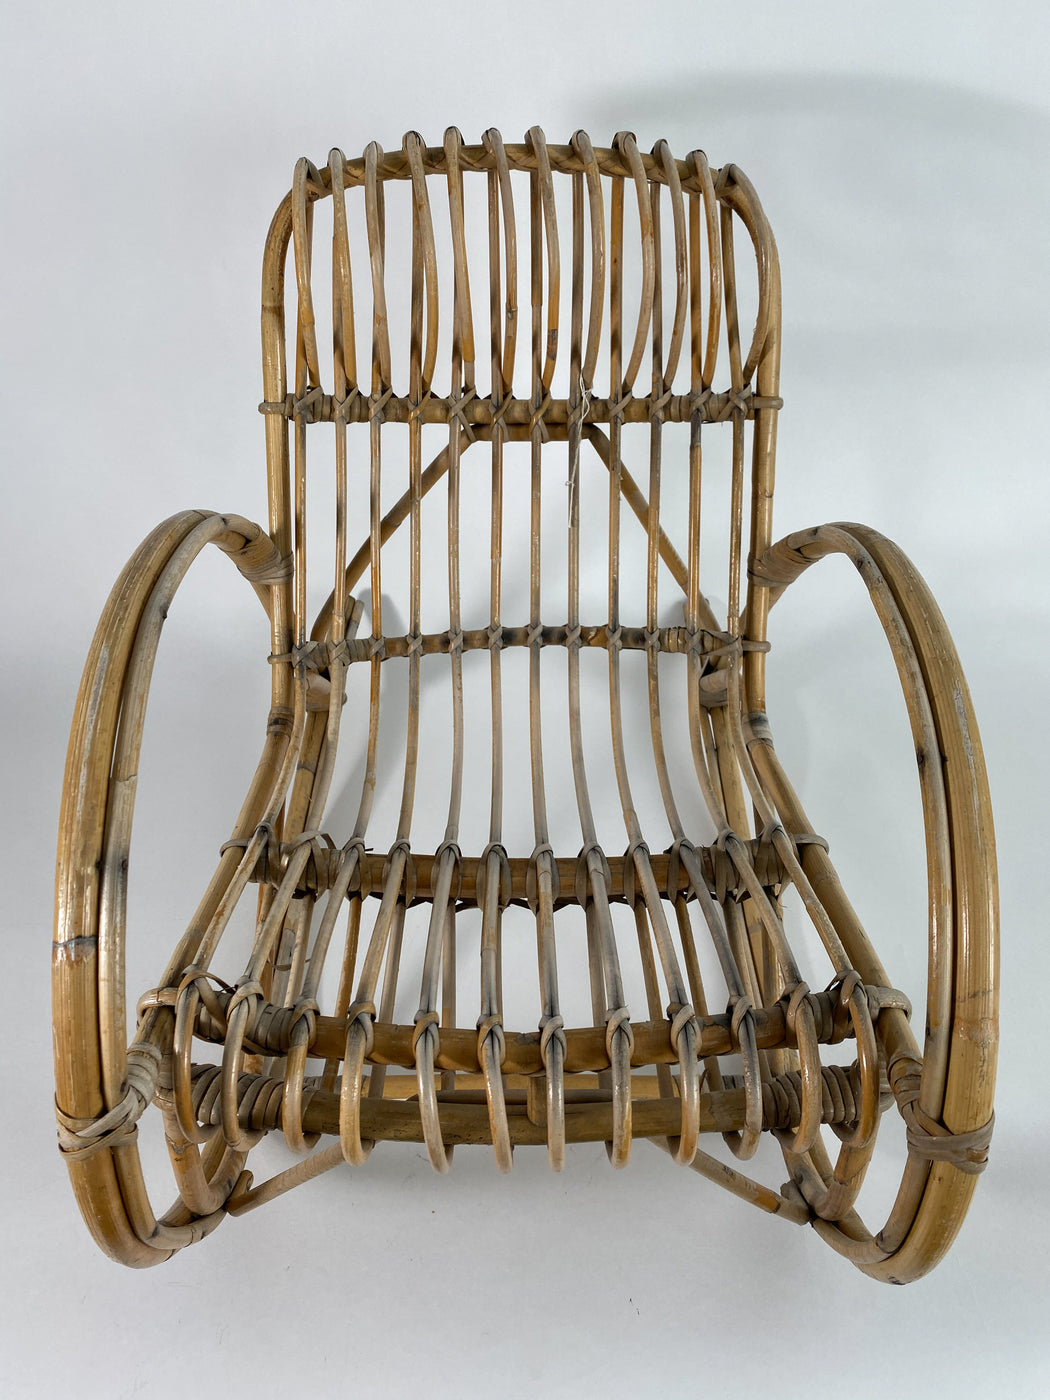 Vintage Baby Rattan Rocking Chair by Franco Albini | Child Toddler Chair